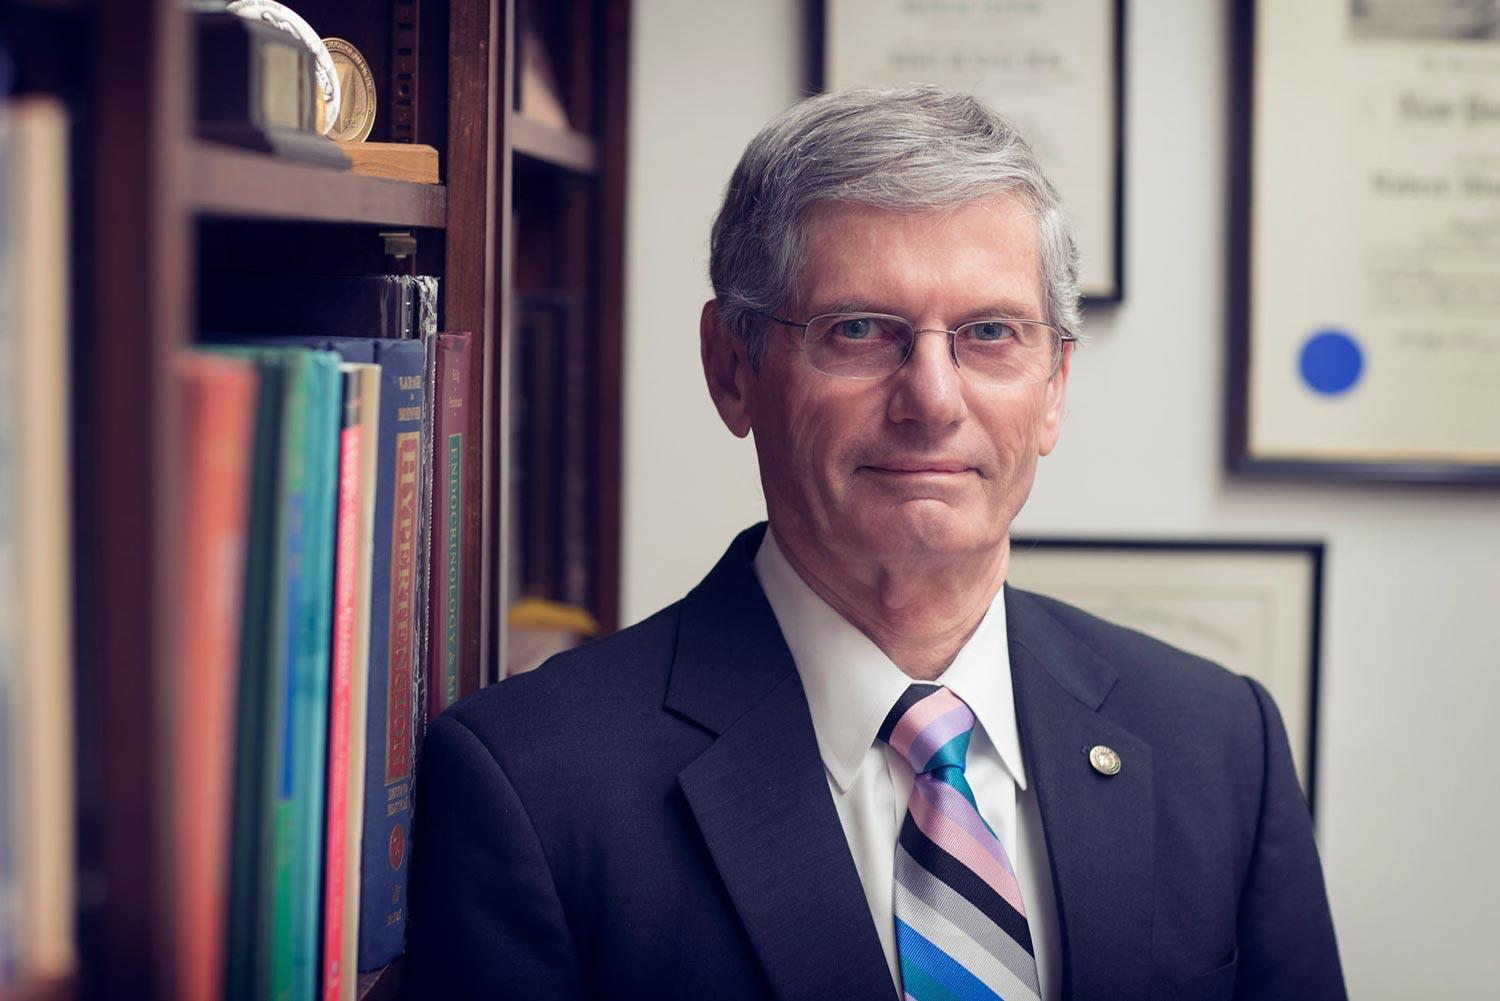 Dr. Robert Carey, a professor of medicine and dean emeritus of the School of Medicine, co-chaired the committee that recently developed sweeping new blood pressure guidelines.